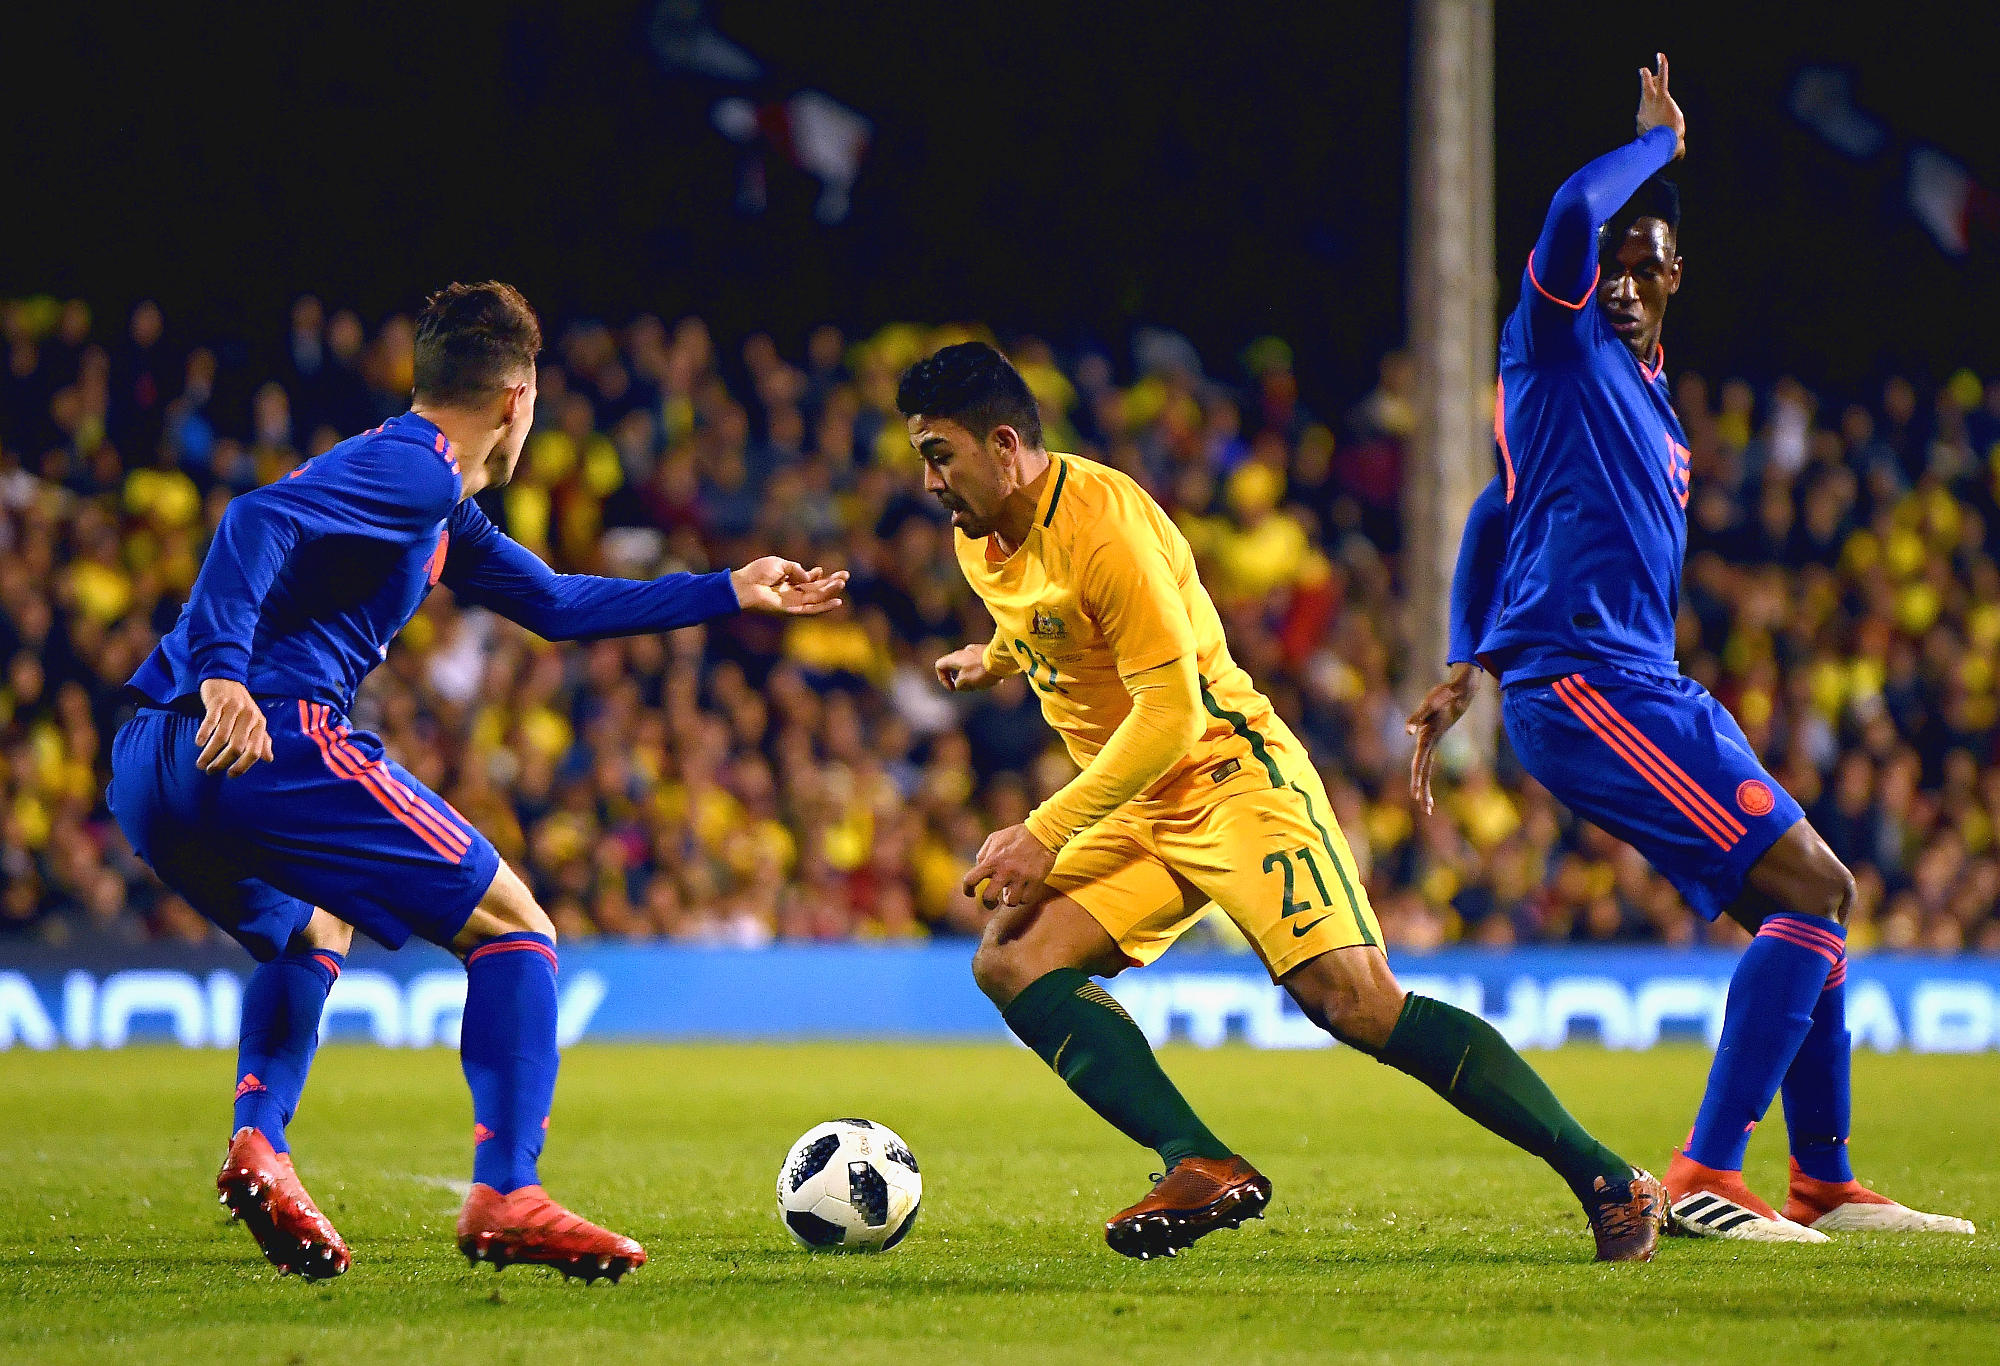 Massimo Luongo takes on the Colombia team